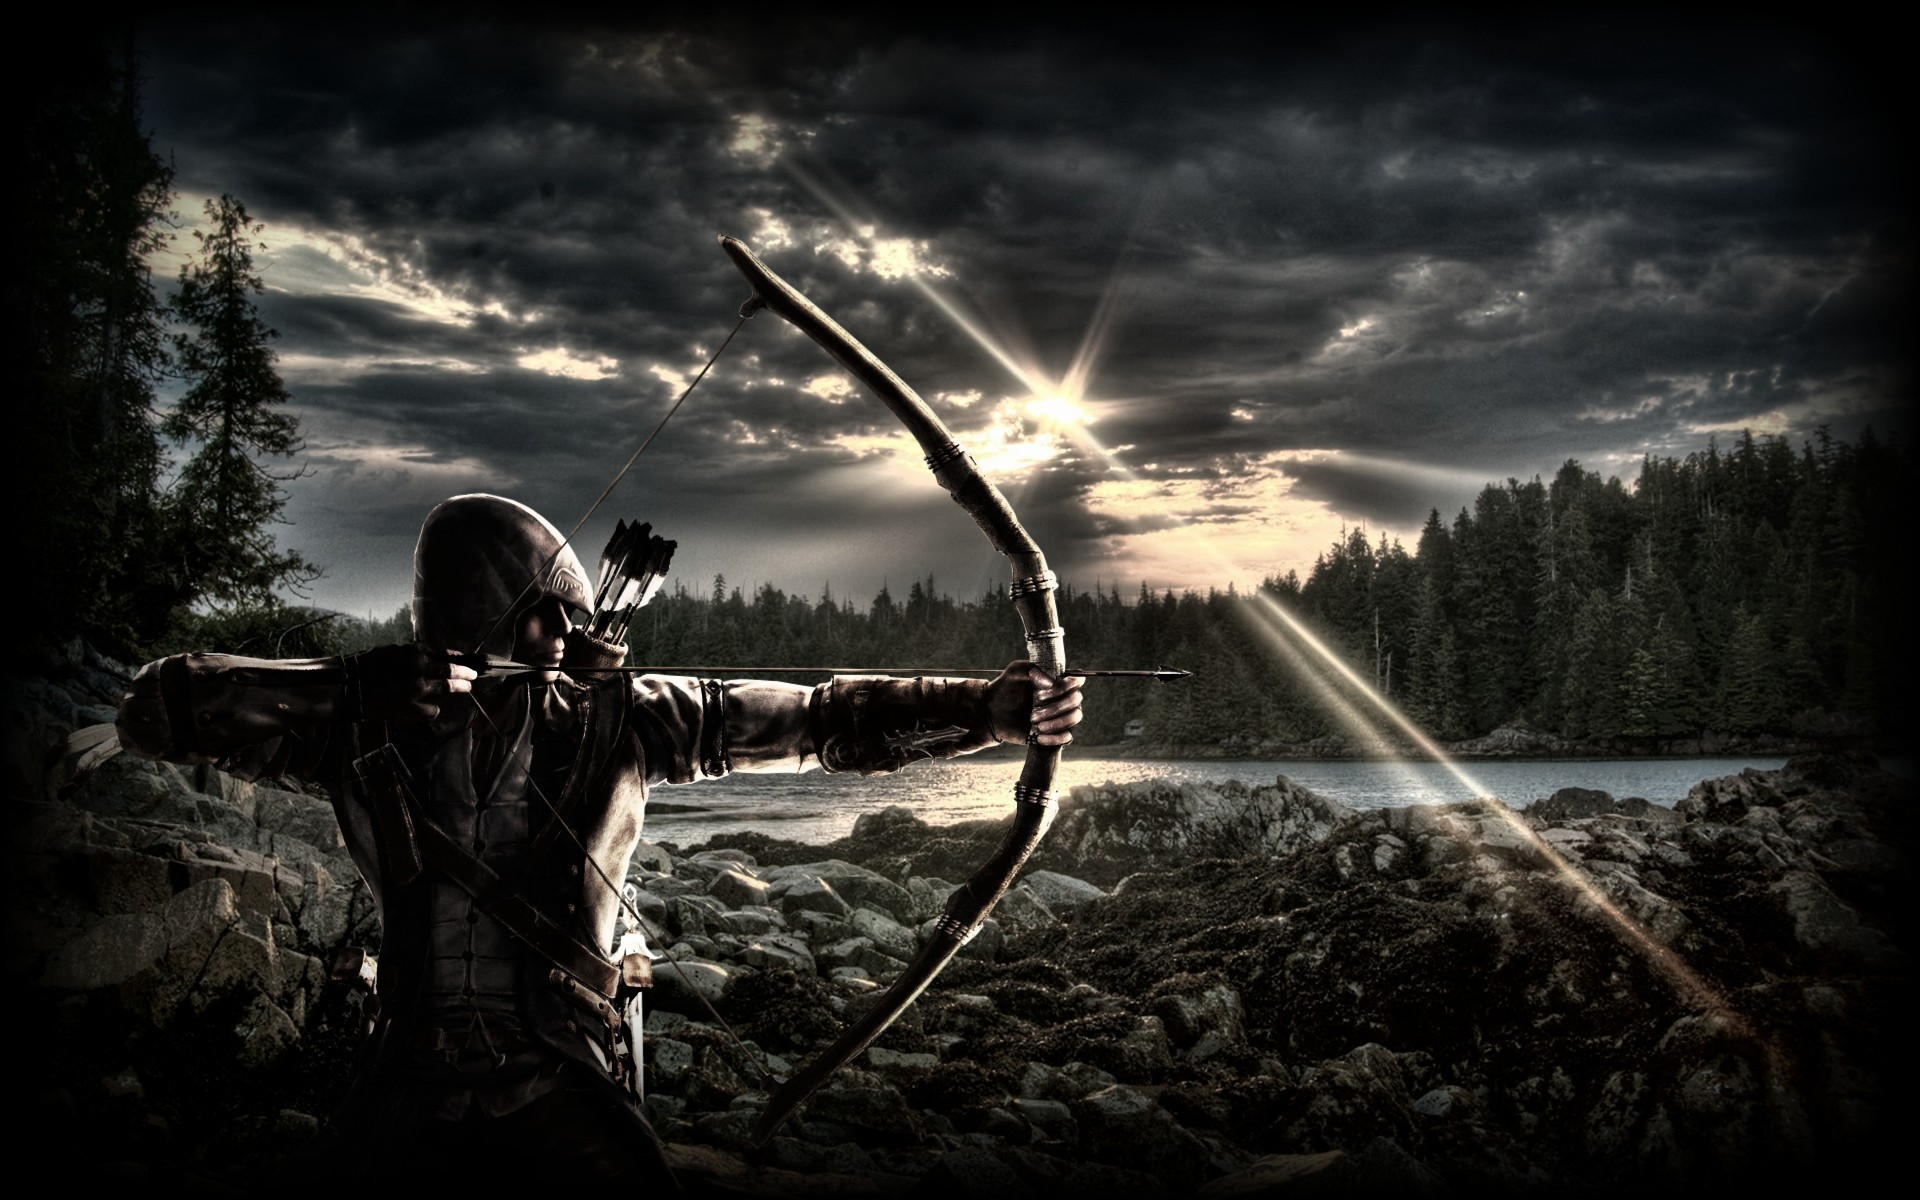 Archery Free Hd Wallpapers For Desktop   Data-src - Two Most Important Days In Your Life Are The Day You - HD Wallpaper